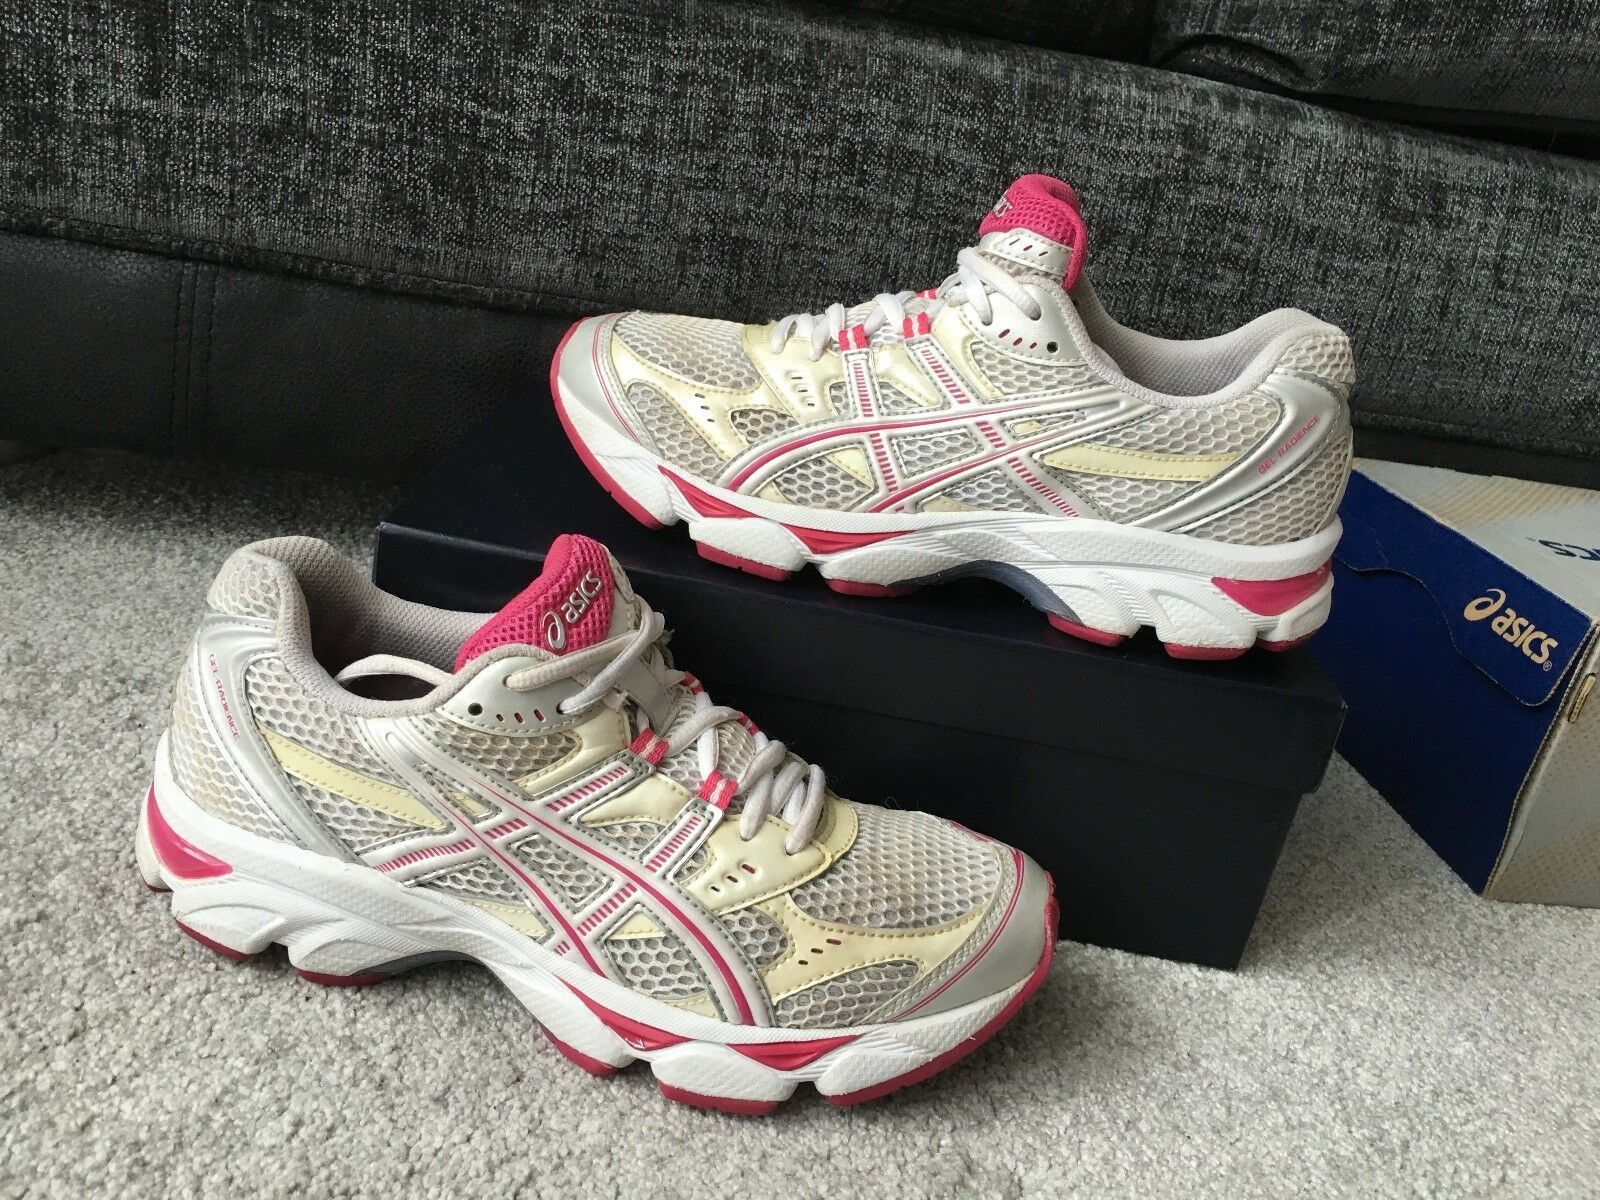 Asics Gel-radience Course À Pied Baskets, USA Taille 7 Eur Taille 38 (24 cm)